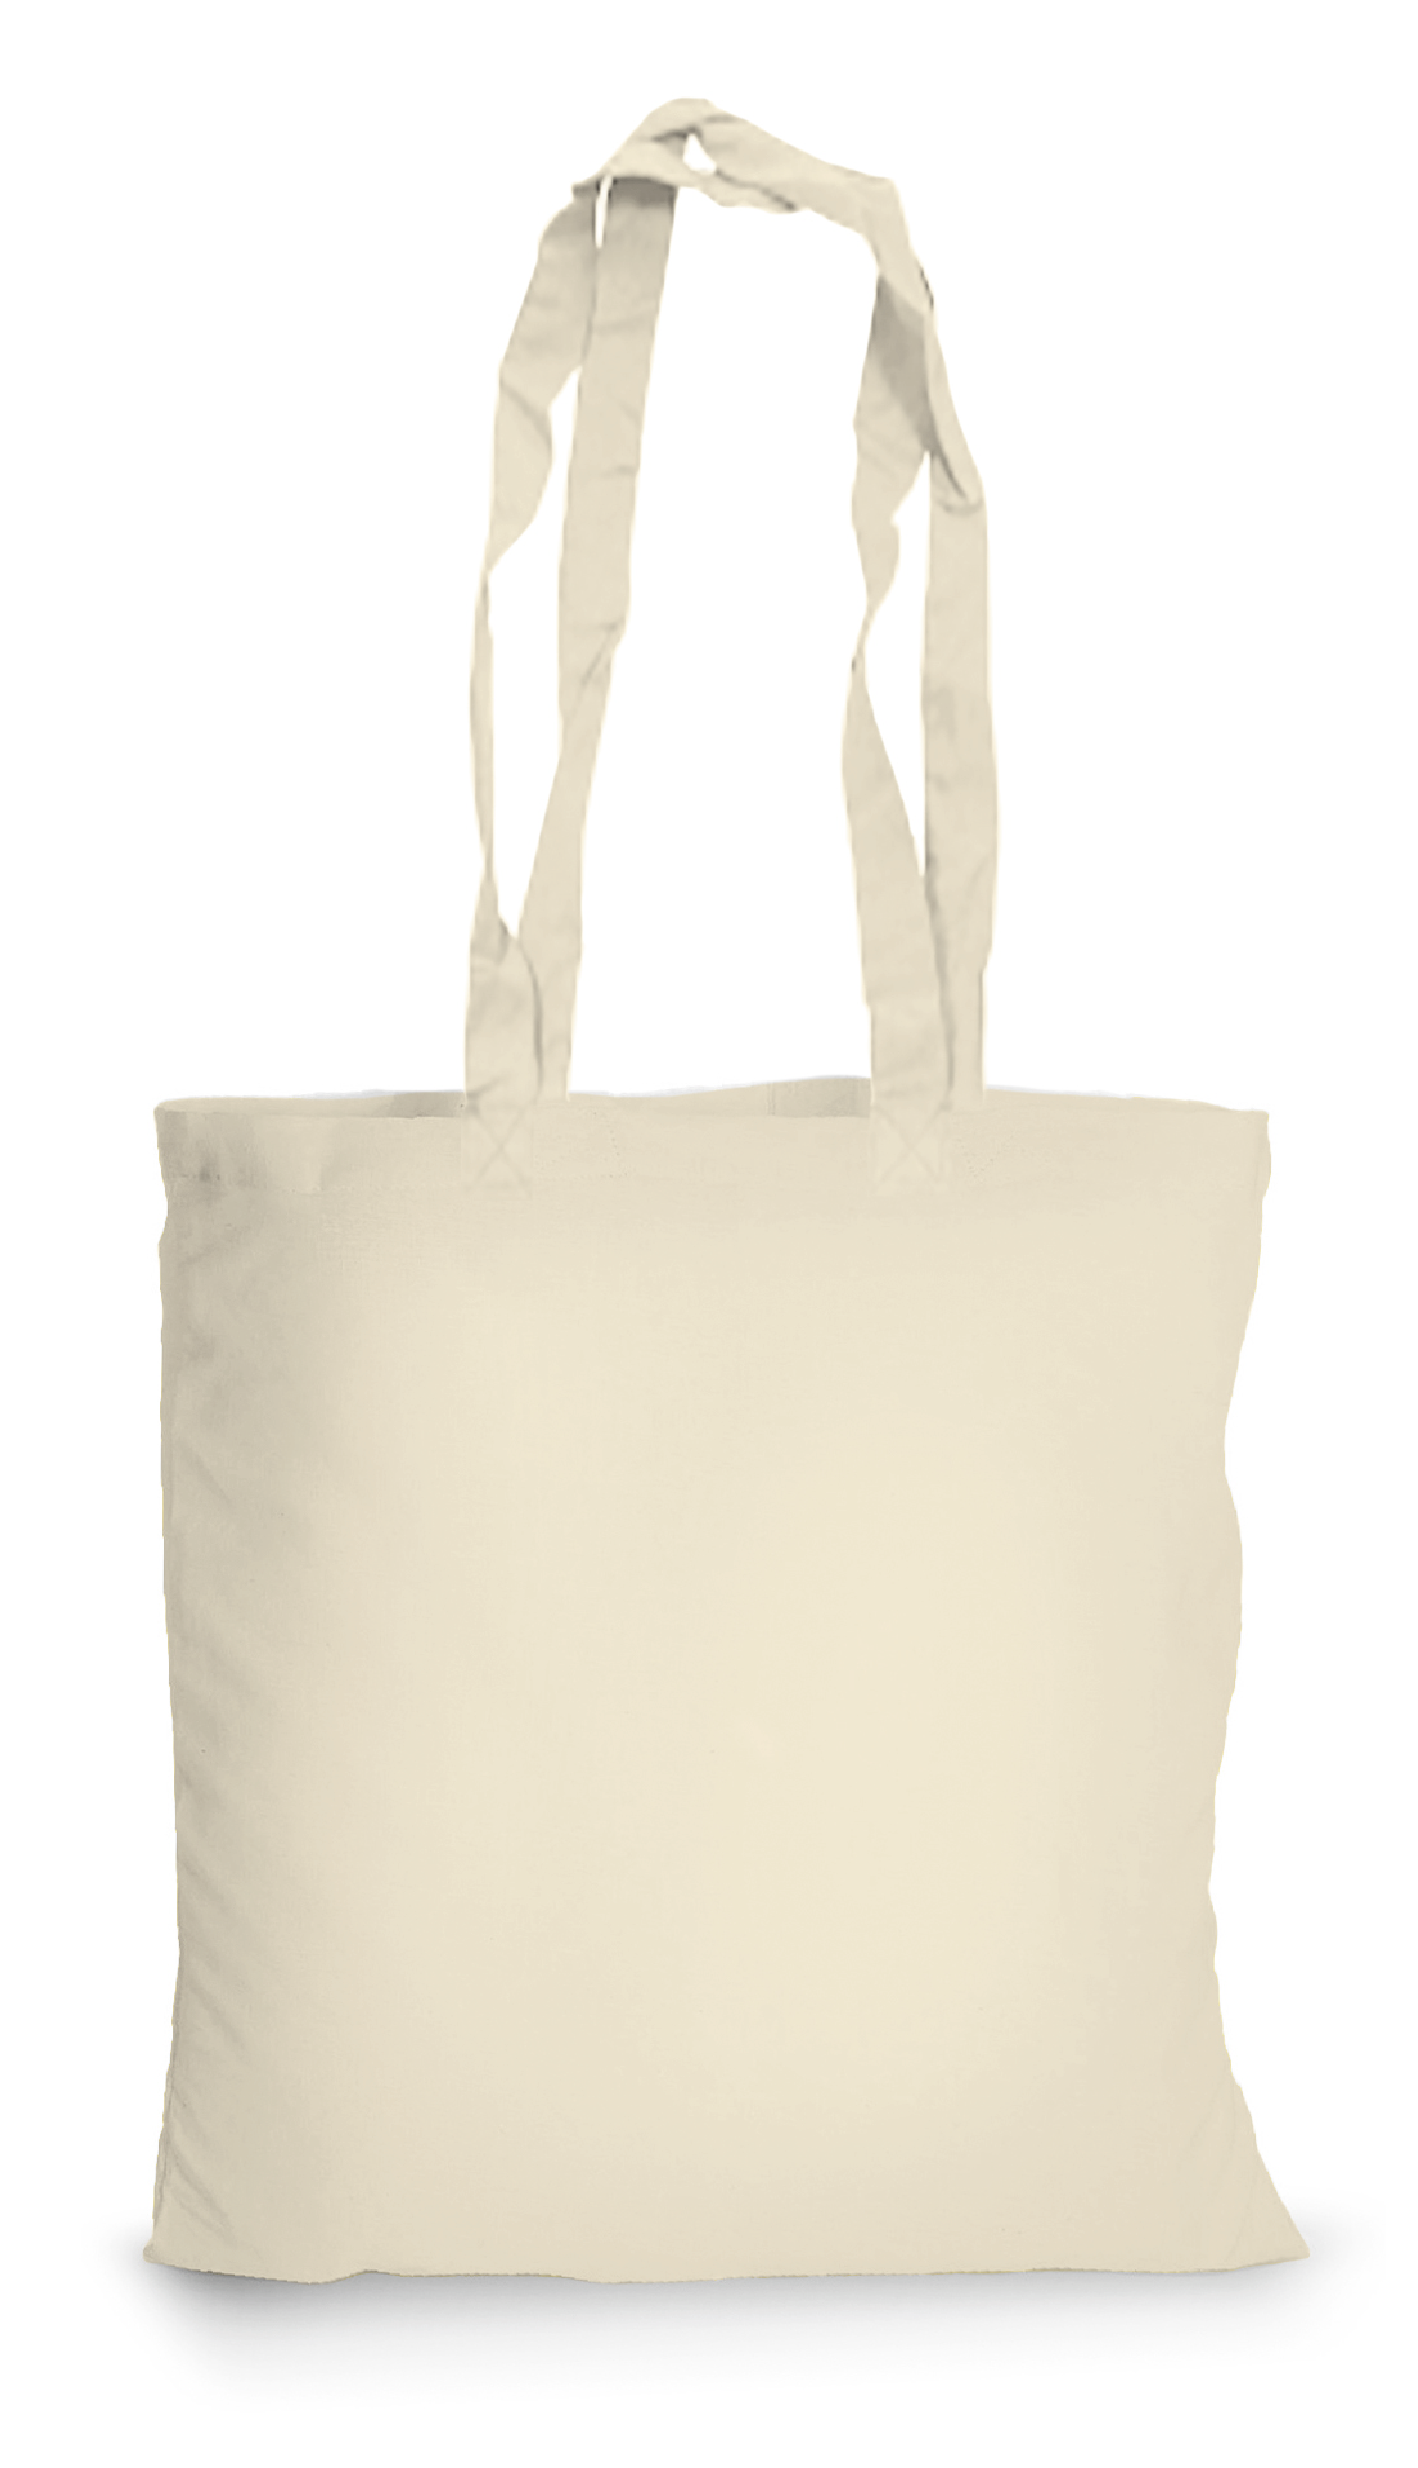 Super handy tote shopping bags with full color print